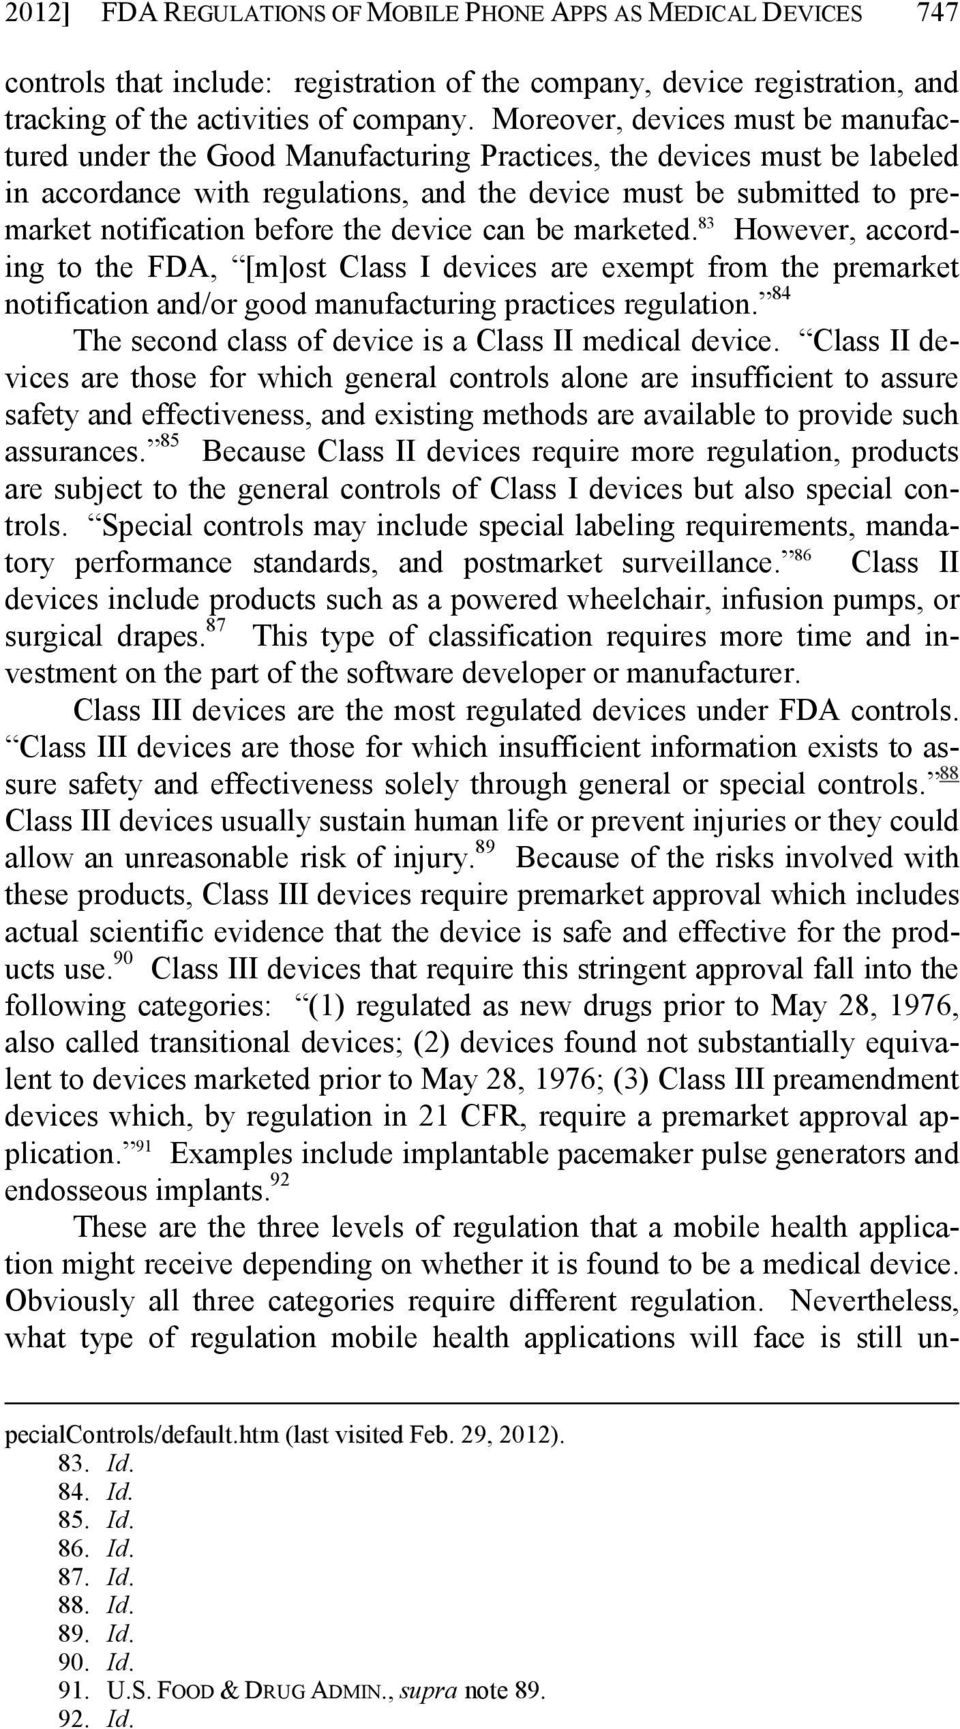 before the device can be marketed. 83 However, according to the FDA, [m]ost Class I devices are exempt from the premarket notification and/or good manufacturing practices regulation.